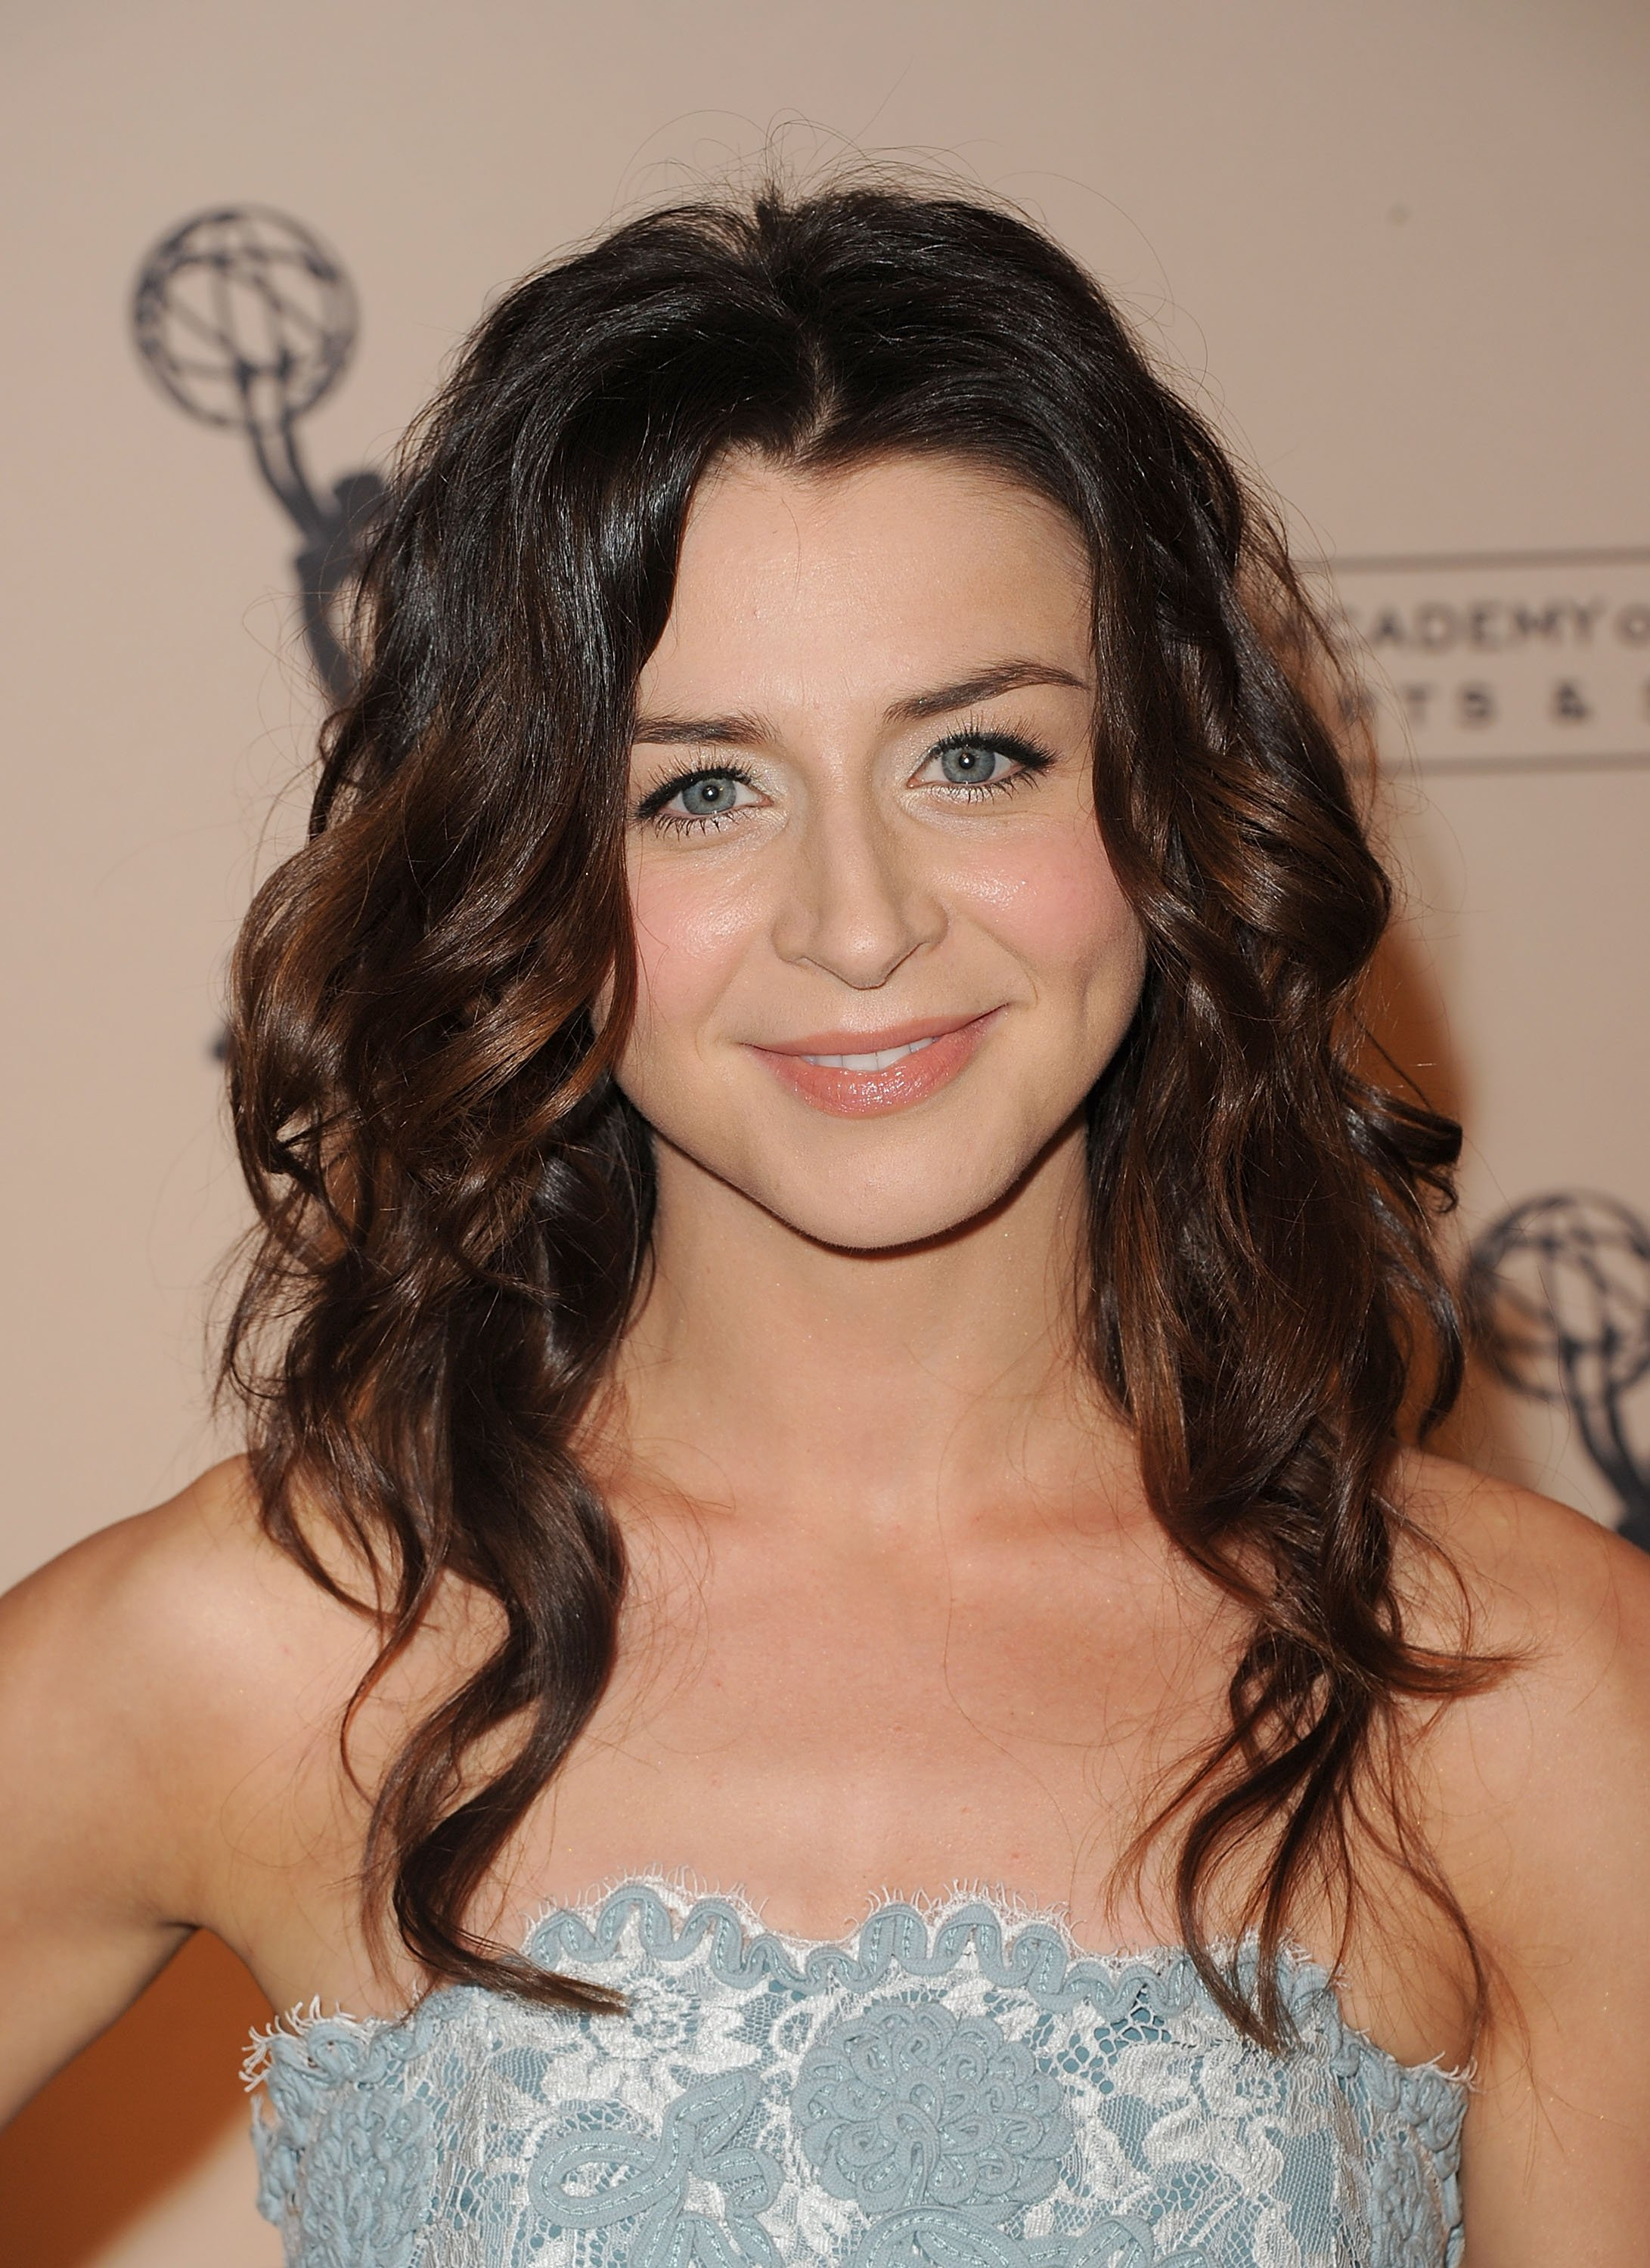 Caterina Scorsone arrives at the 4th Annual Television Academy Honors held at Beverly Hills Hotel on May 5, 2011, in Beverly Hills, California. | Source: Getty Images.